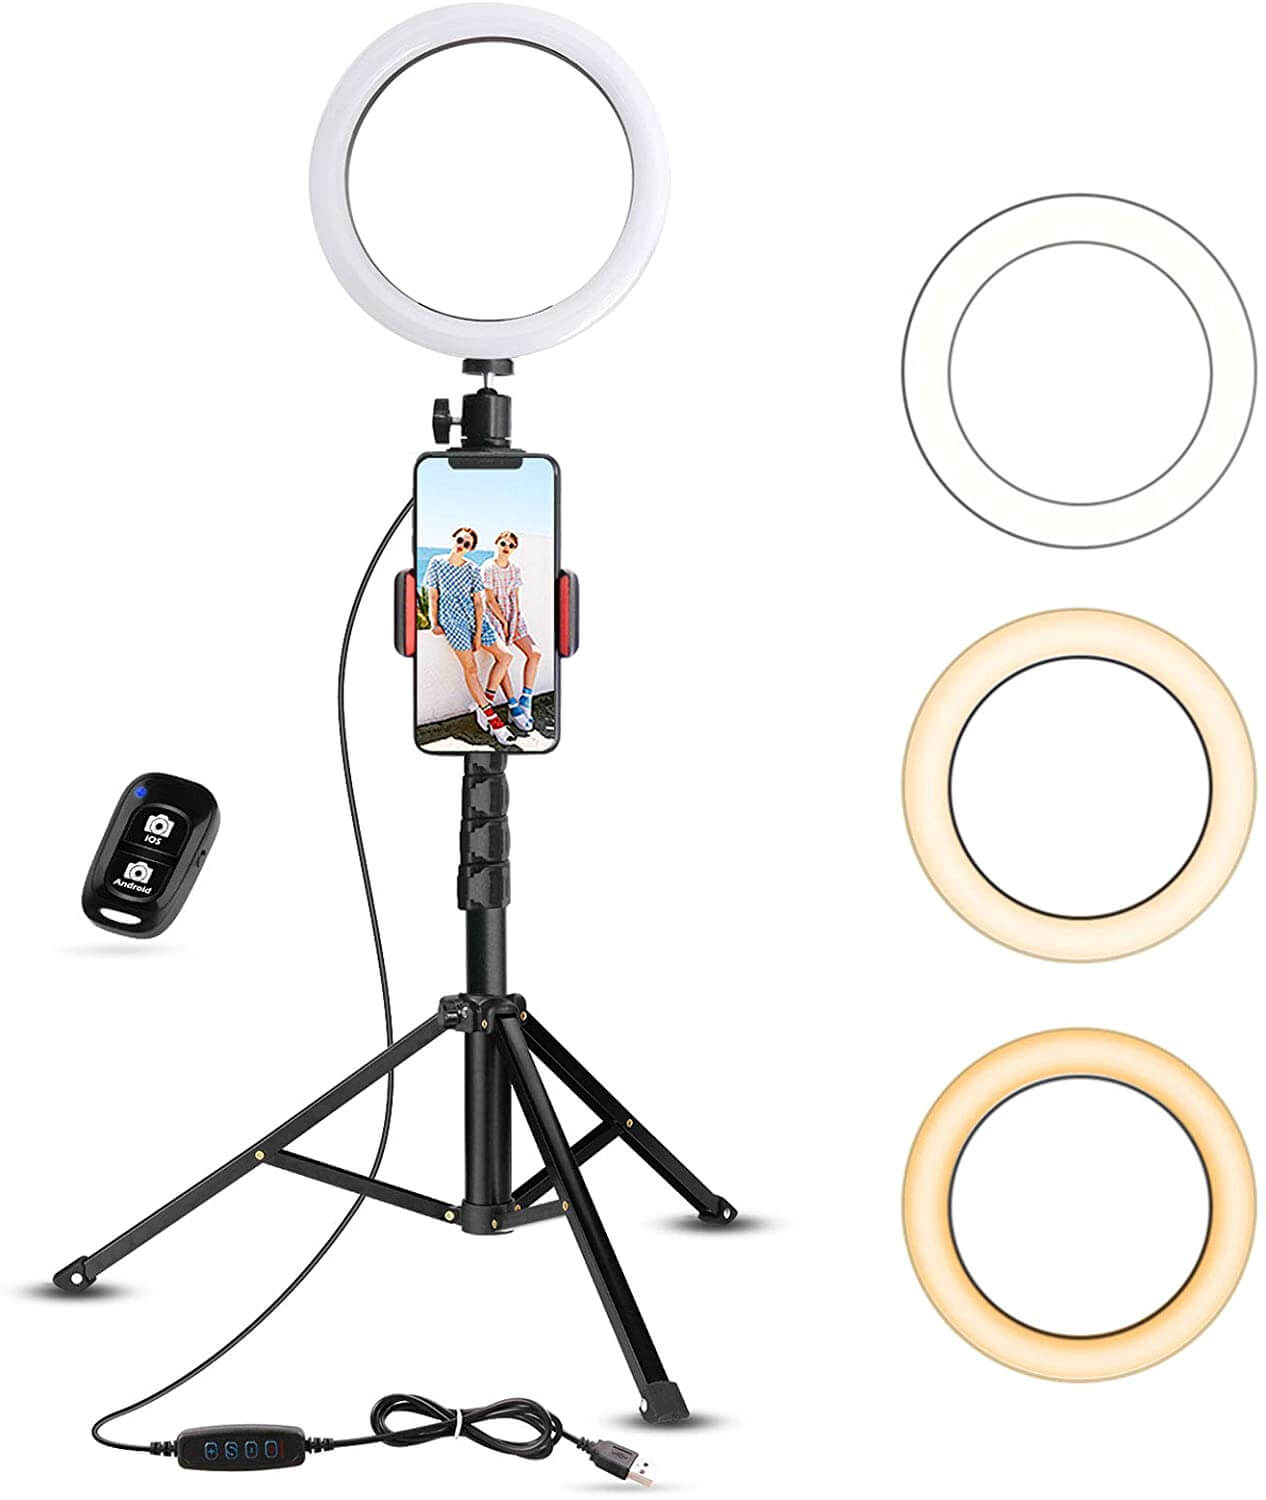 Selfie Ring Light with Tripod Stand - 2020 Holiday Gift List